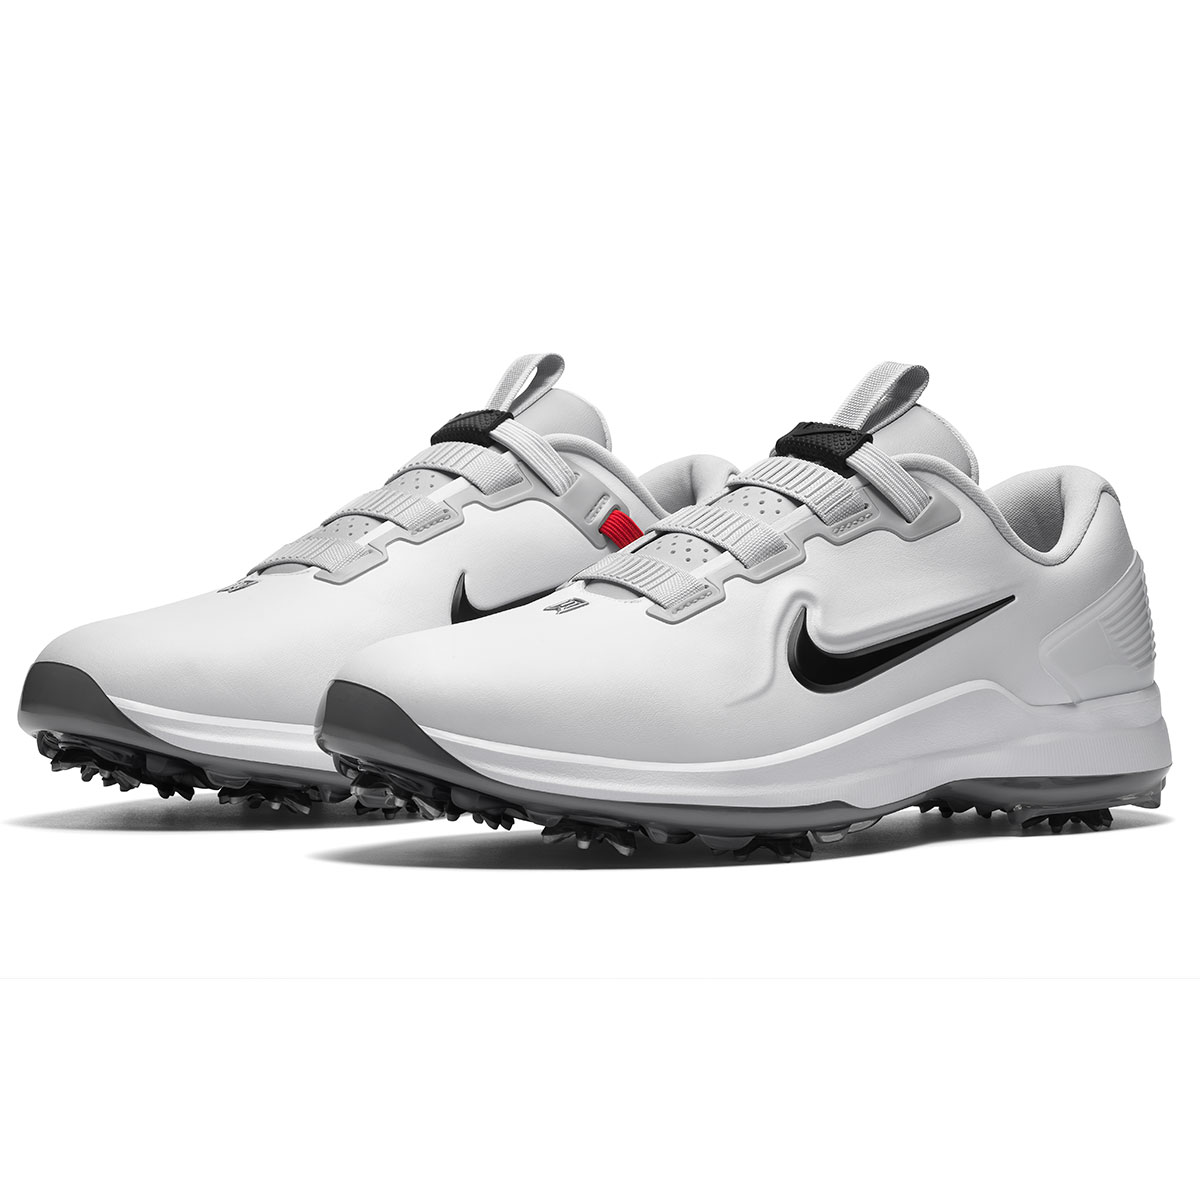 New Tiger Woods Shoes 219 Best Sale, UP TO 59% OFF